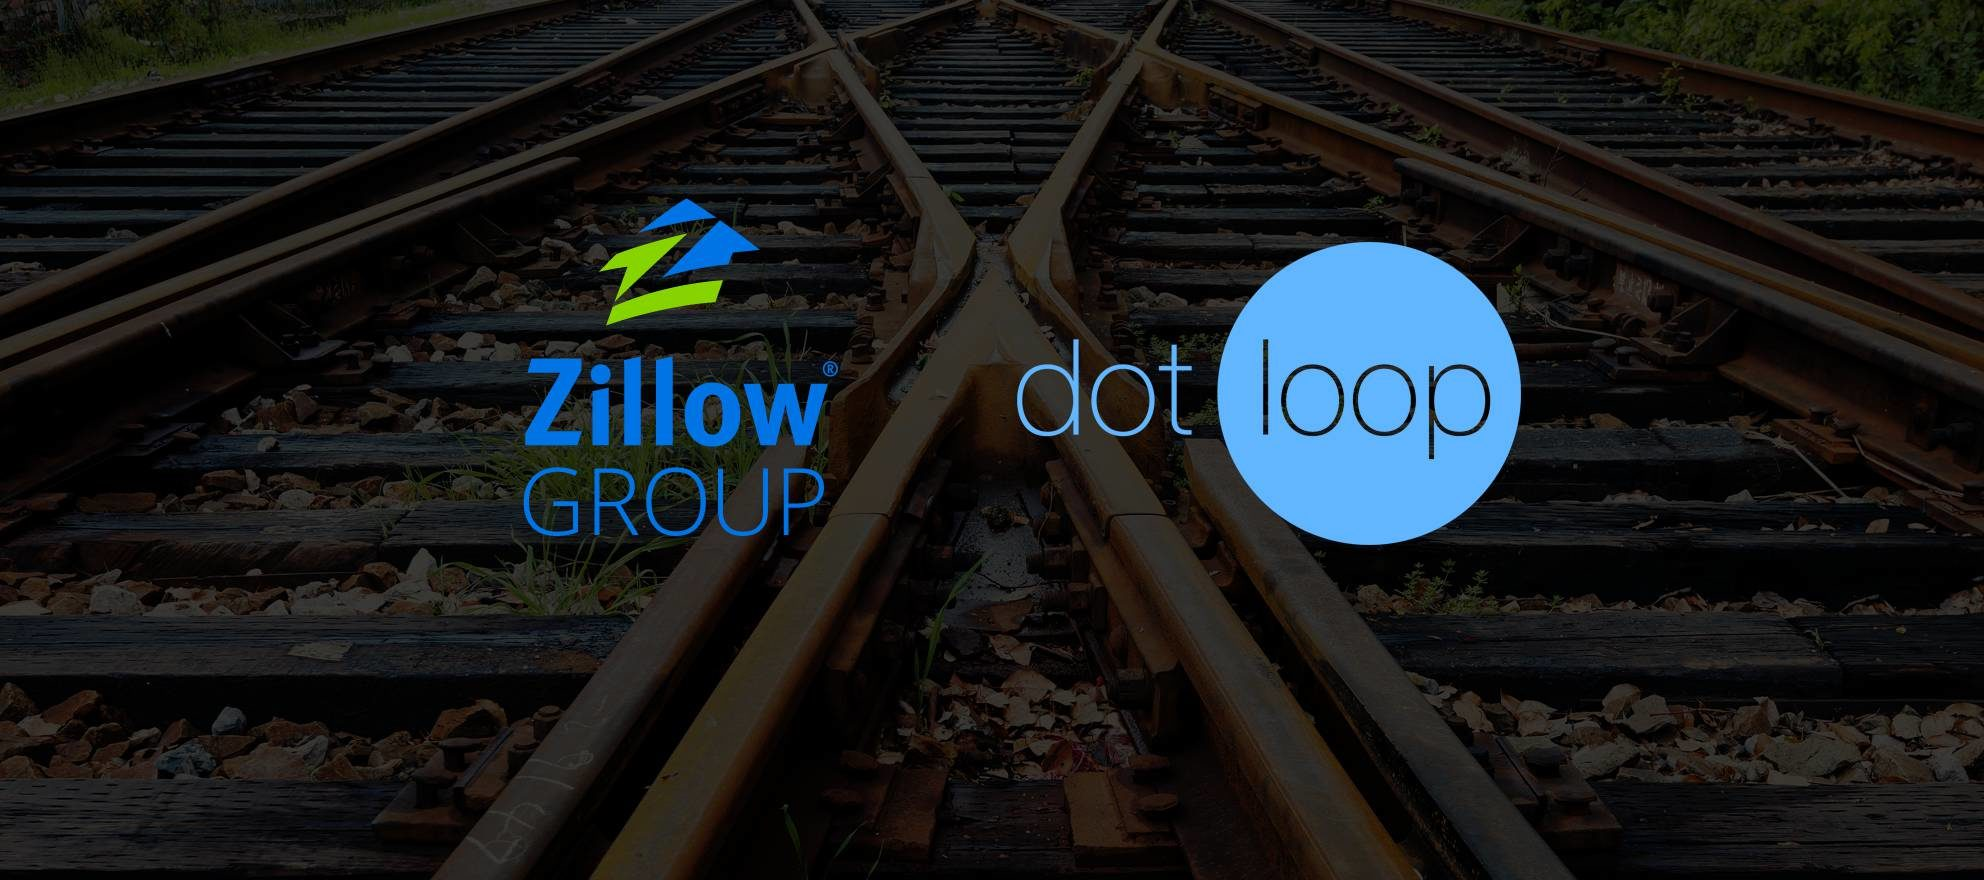 Zillow Group to buy dotloop